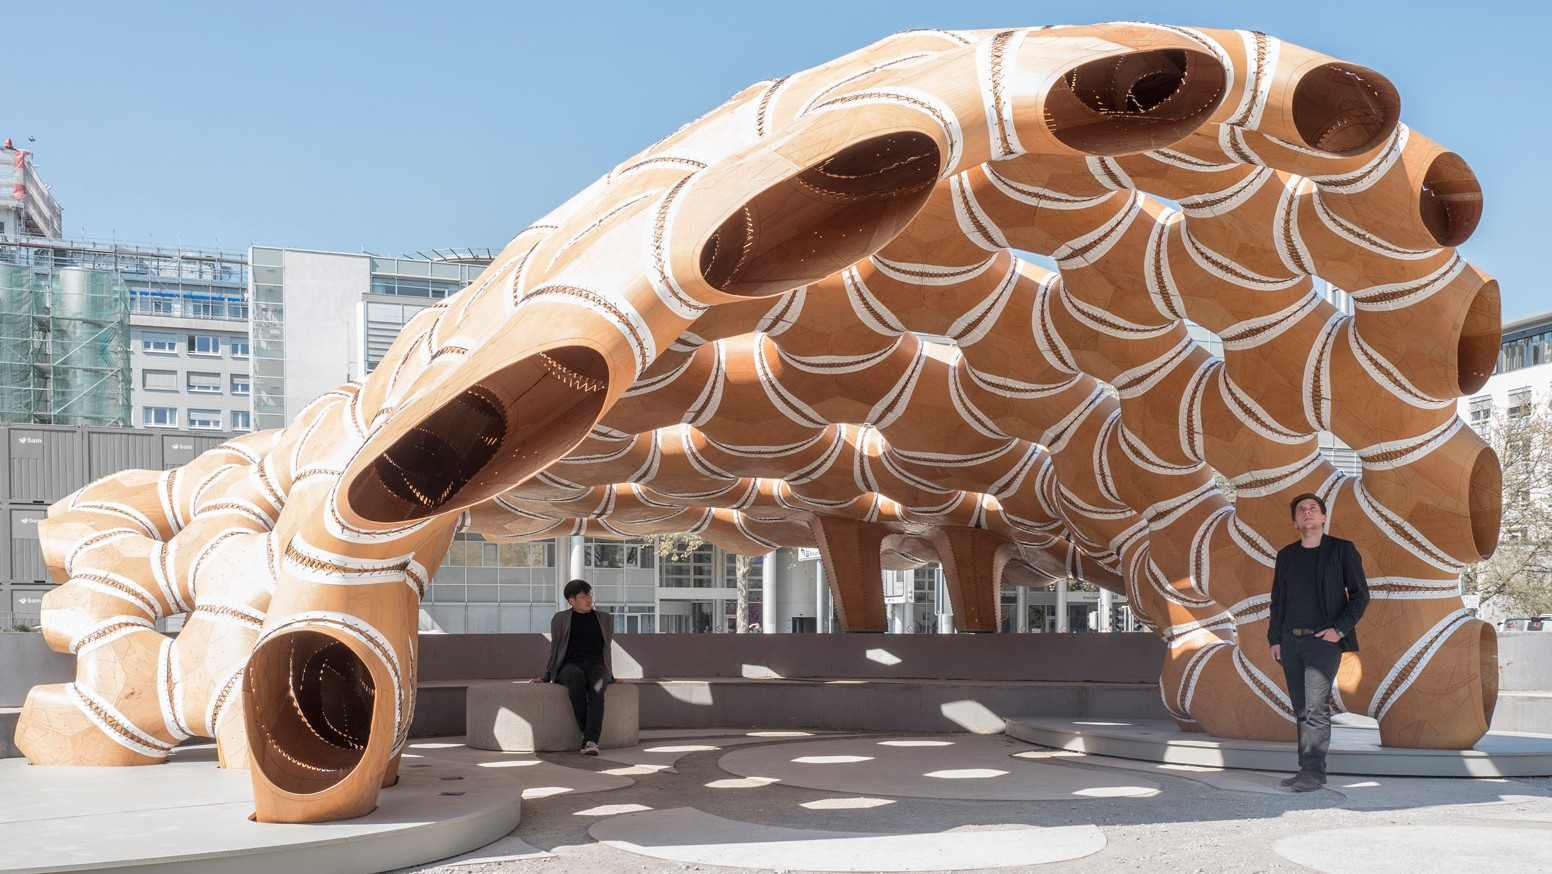 Robotically Constructed Pavilion Inspired By Sea Urchins